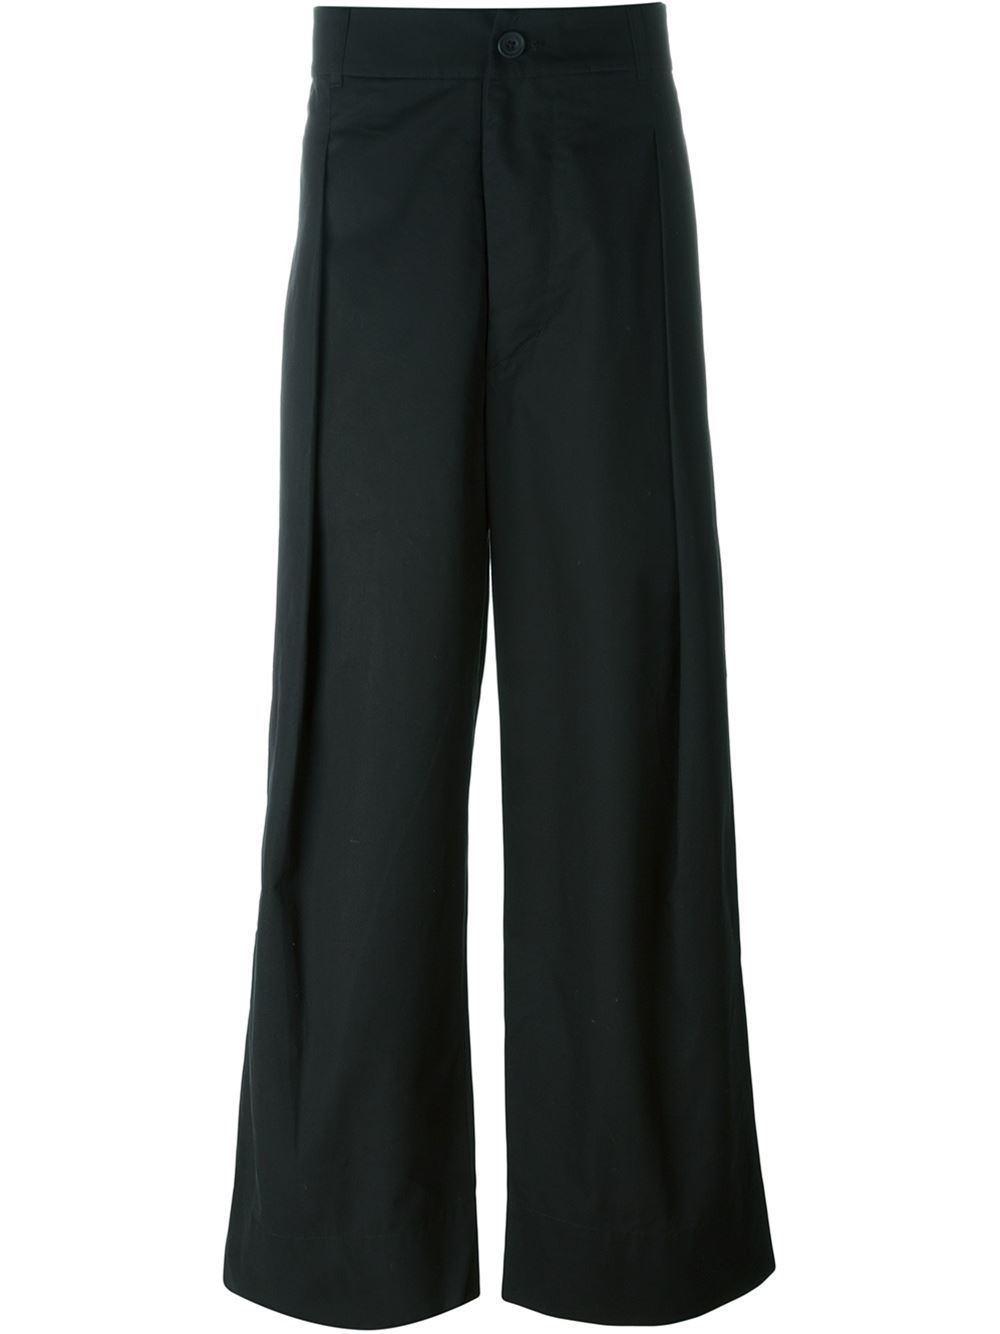 Looking for wide leg pants this popular dress slack is your answer. Budget-Priced Polyester Dress Pants with classic good looks. Zip front fly. Machine washable polyester slacks by Silvert. Complimentary hemming! (You can enter the inseam length during final checkout).